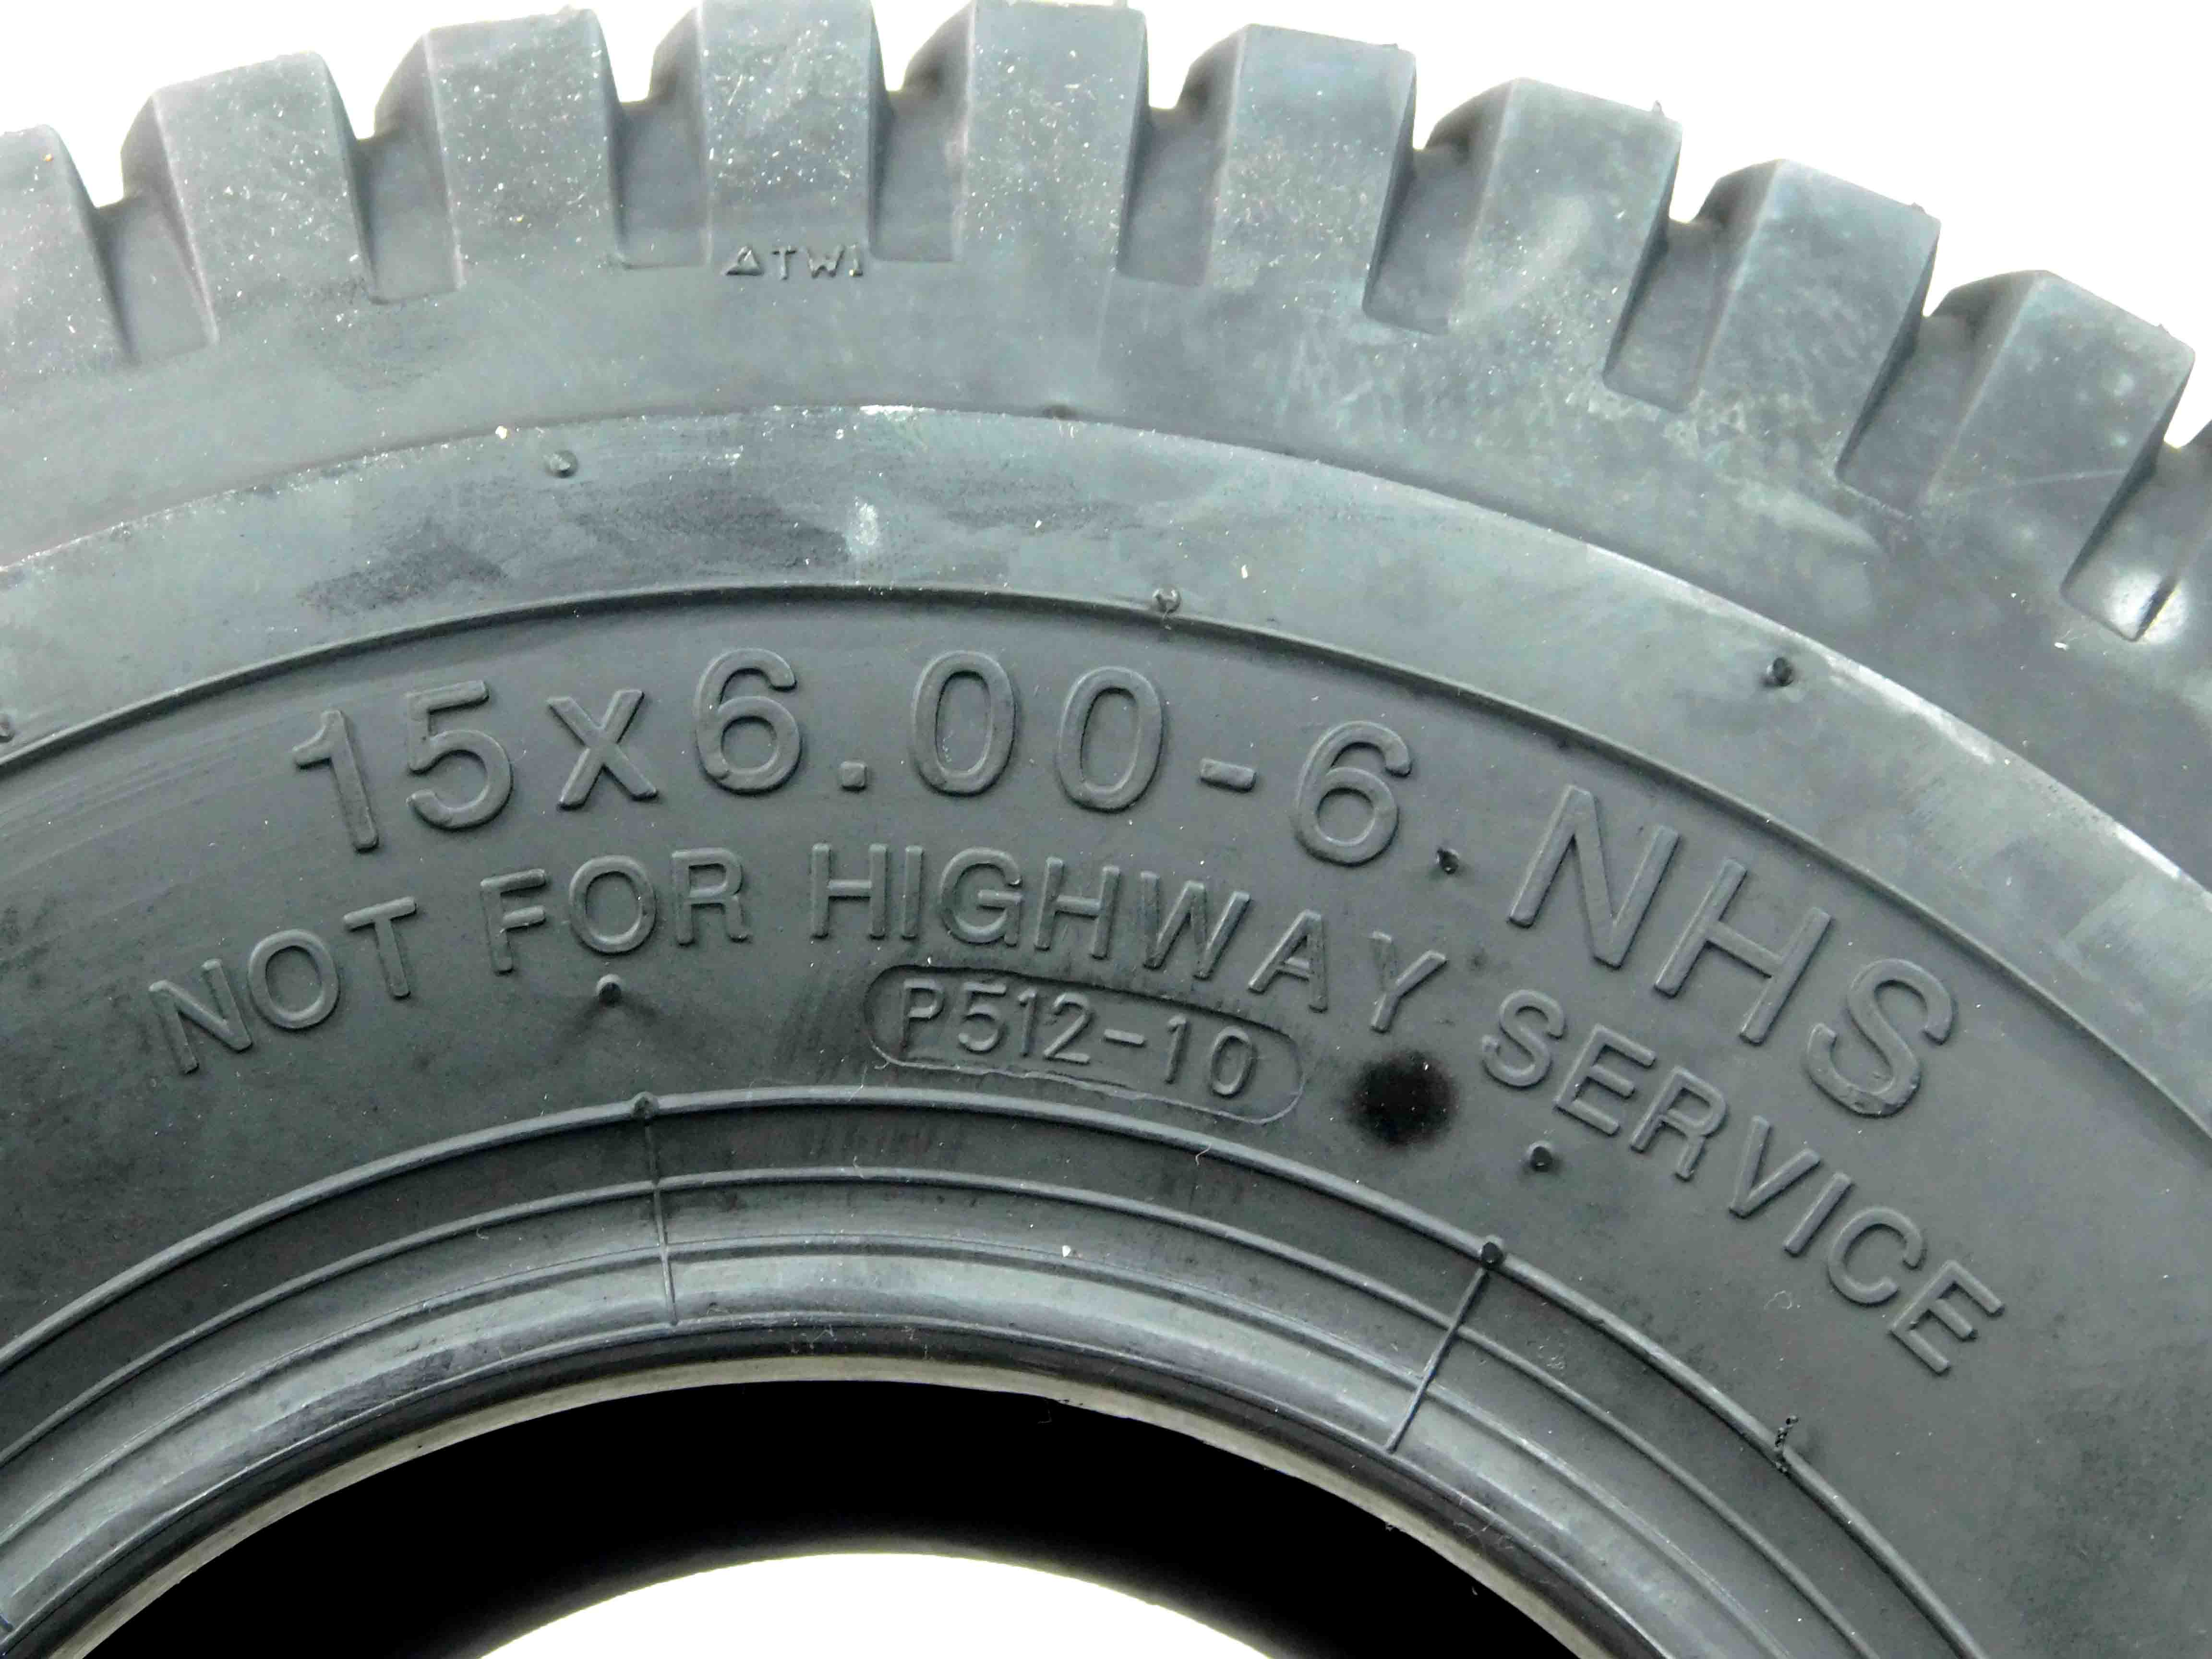 MASSFX-15x6-6-Lawn-Mower-Tires-4ply-image-2